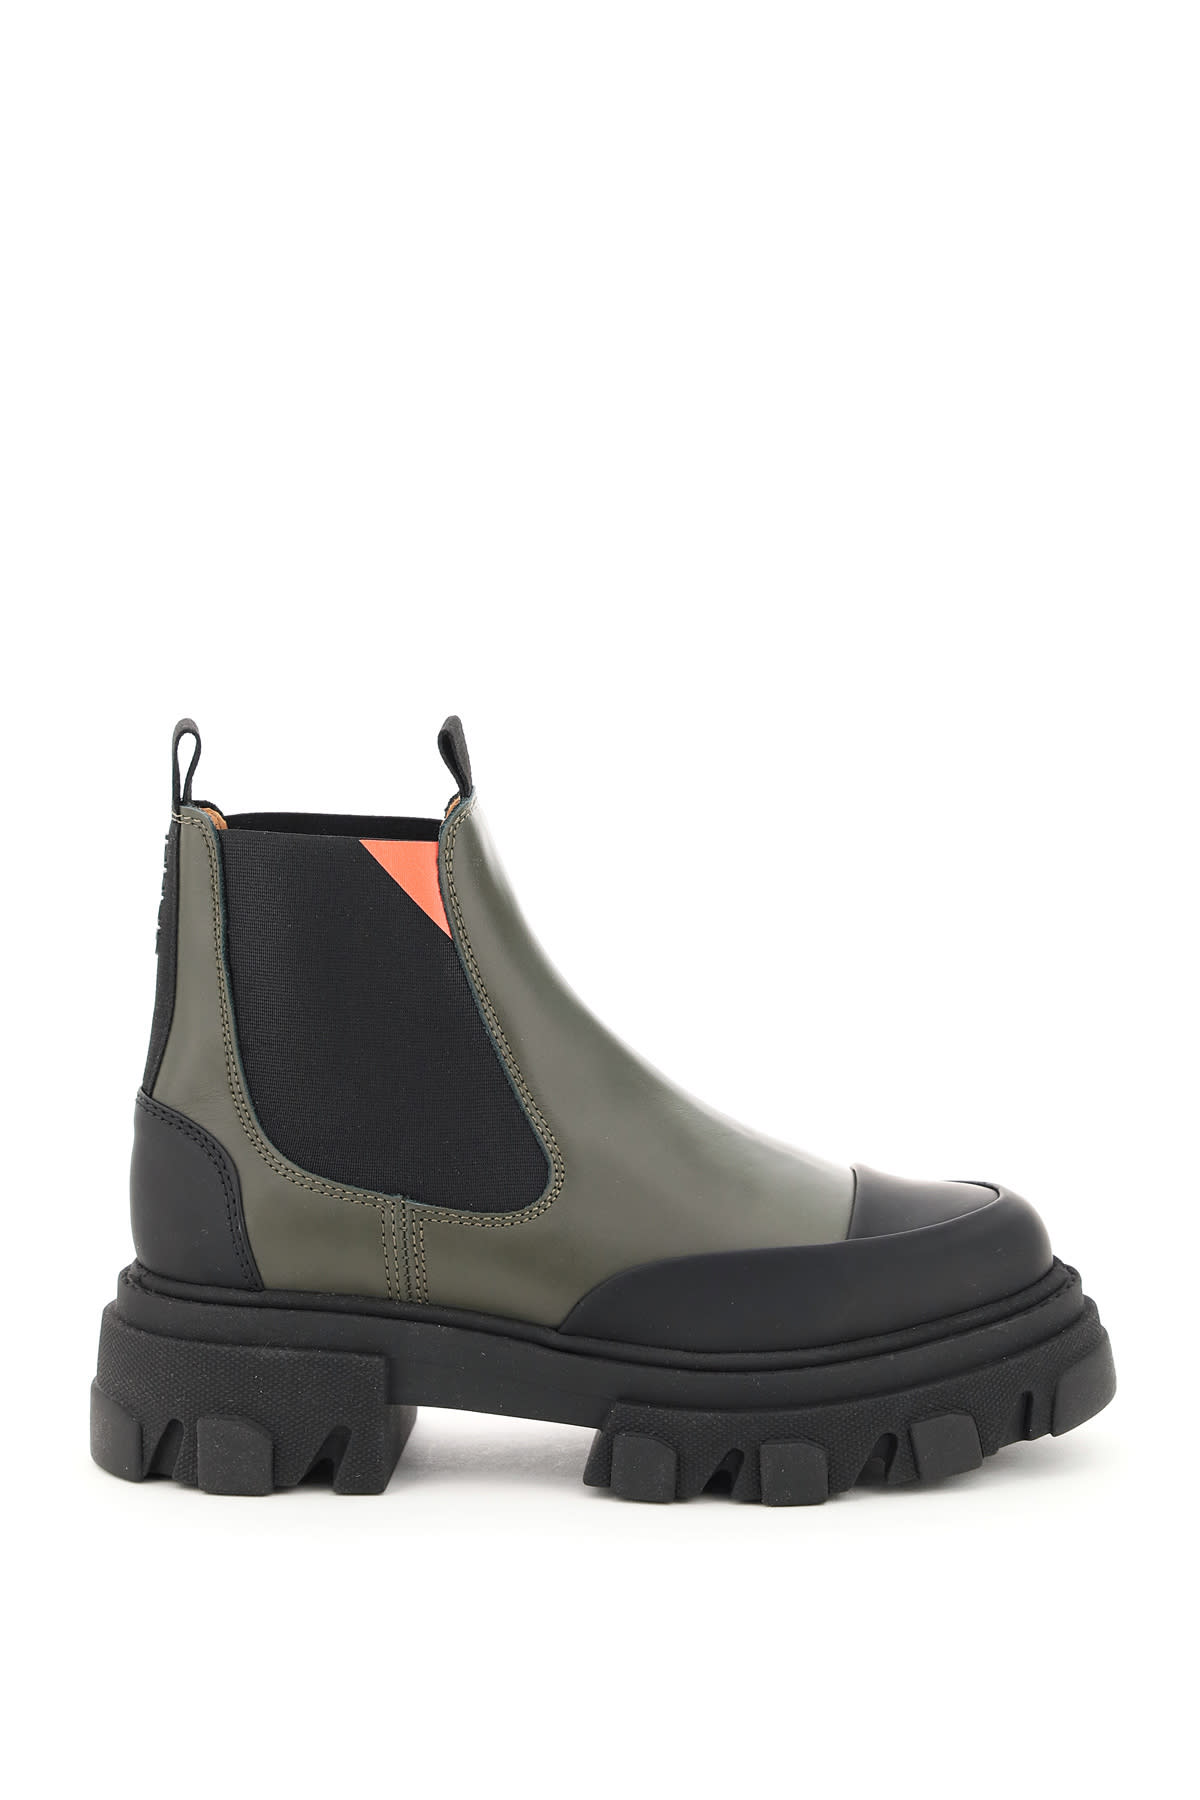 Ganni Leathers LEATHER CHELSEA BOOTS